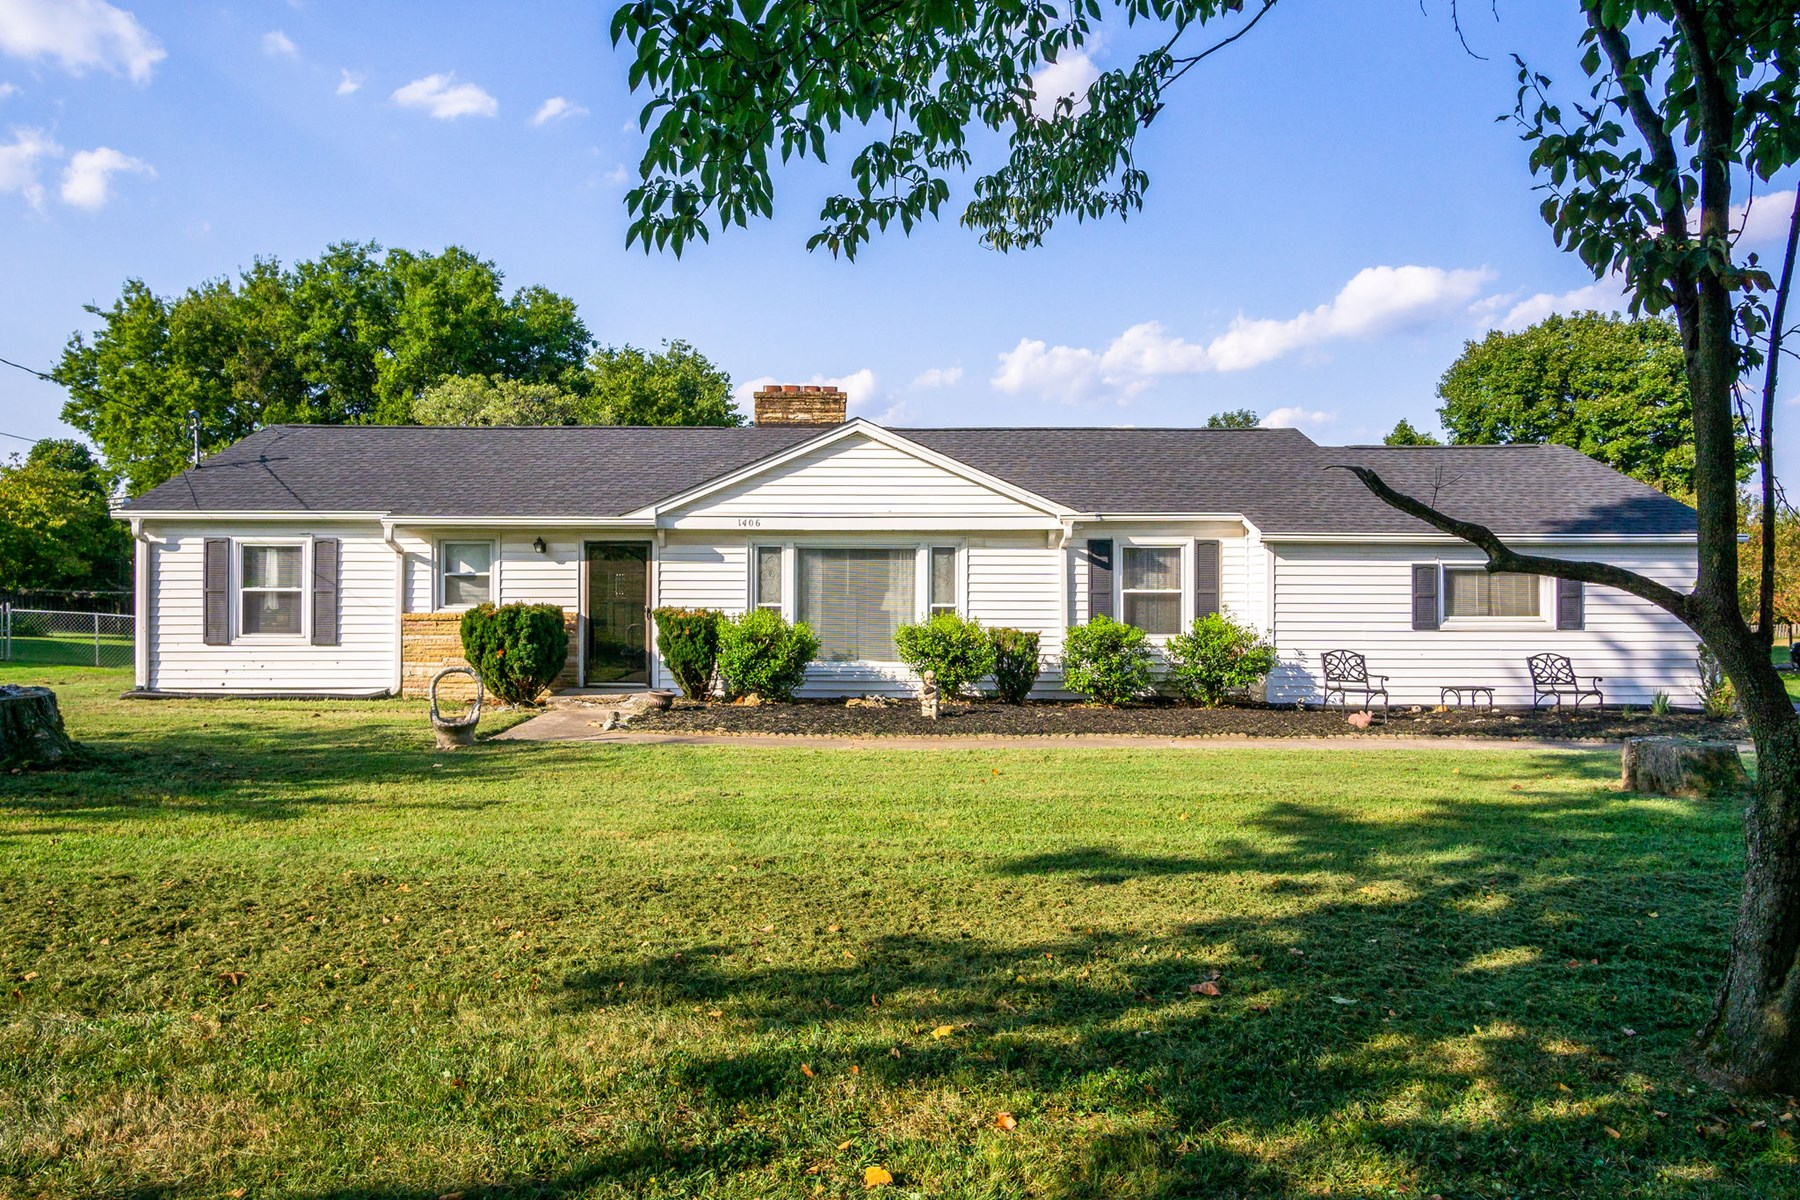 Updated 3 Bedroom/2 Bath Home, Located in Maury Co., Tenn